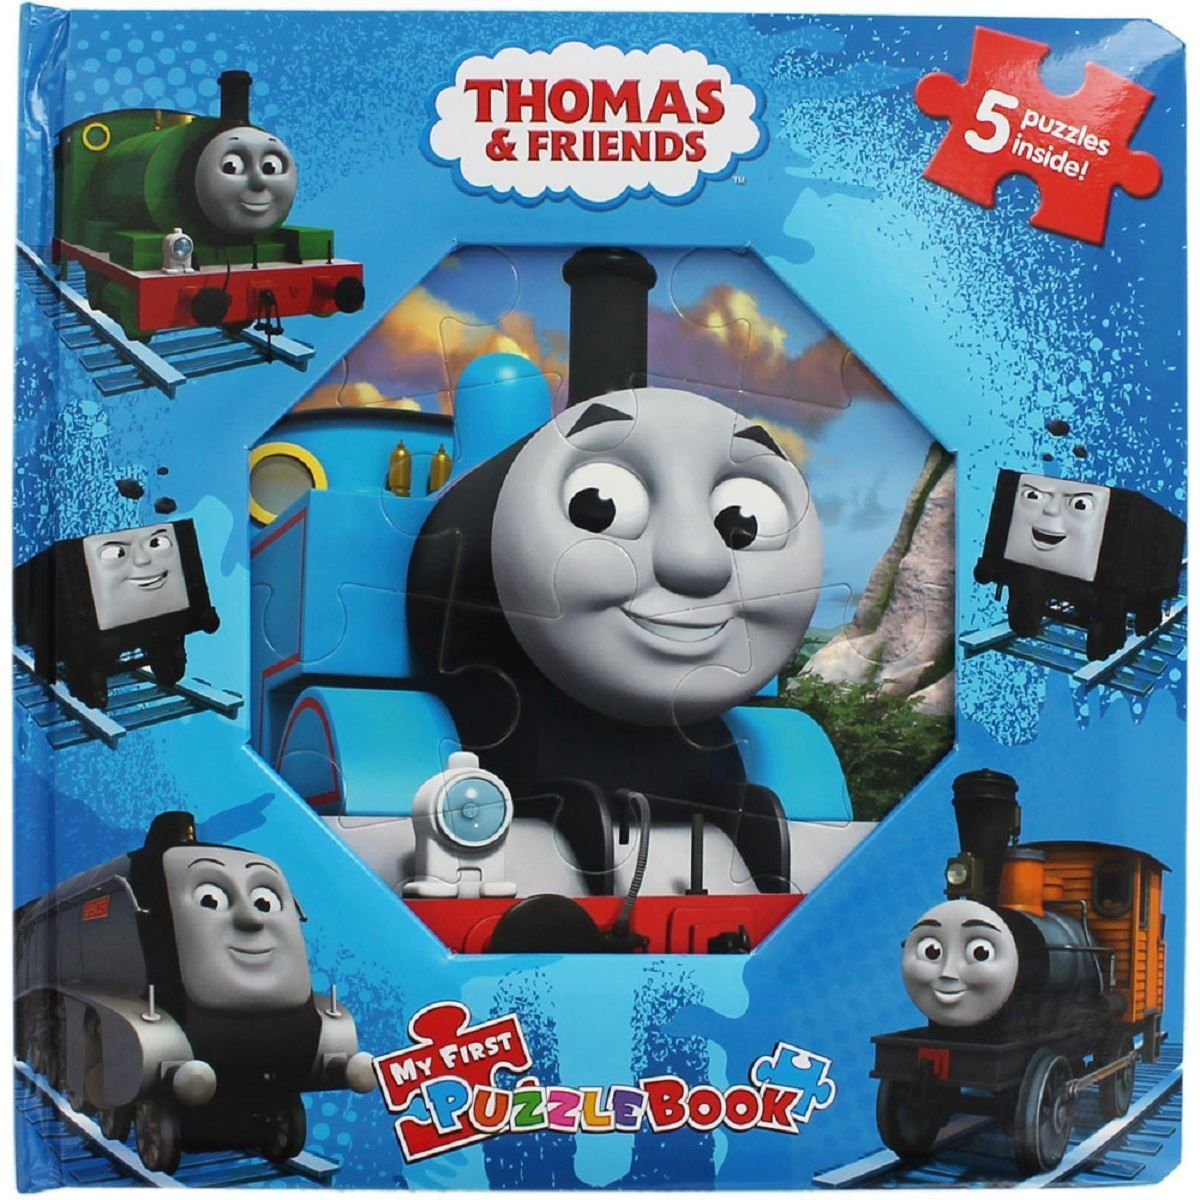 Davesdeals My First Puzzle B Http Davesdeals Com Au Products My First Puzzle Book Thomas Friends 1 Utm Cam Puzzle Books Thomas And Friends My Busy Books